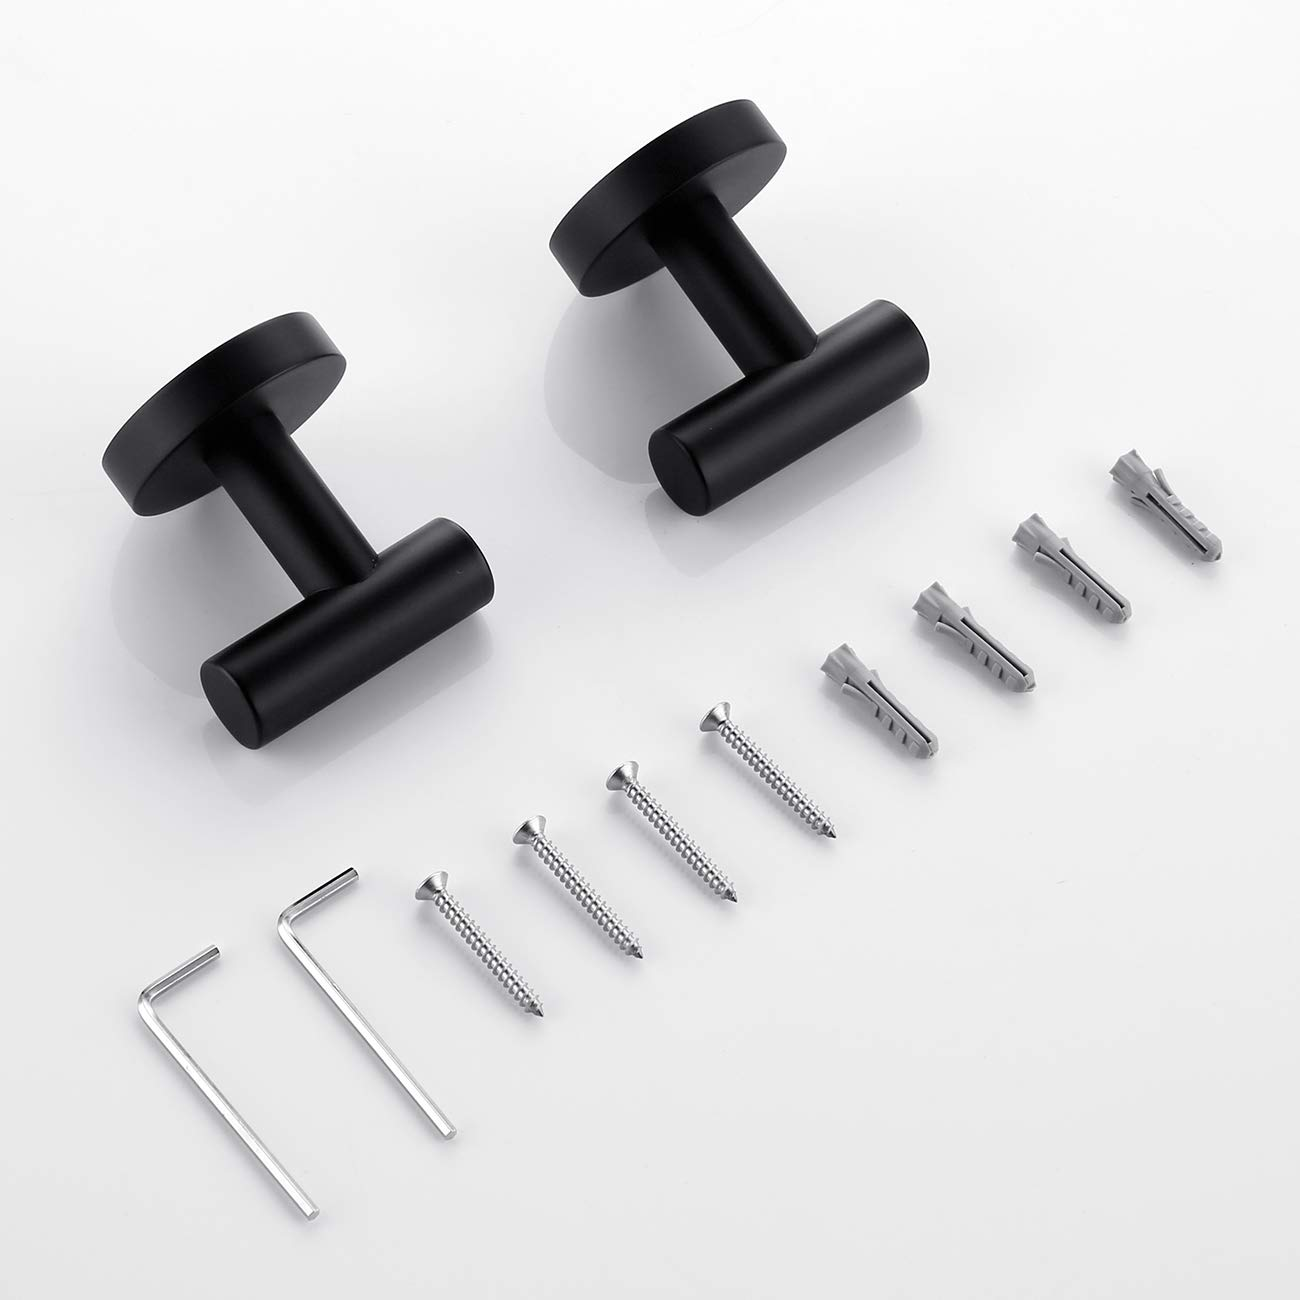 Hoooh Matte Black Coat Hook Towel/Robe Clothes Hook for Bath Kitchen Garage SUS 304 Stainless Steel Wall Mounted, 2 Pack, B100-BK-P2 by Hoooh (Image #9)